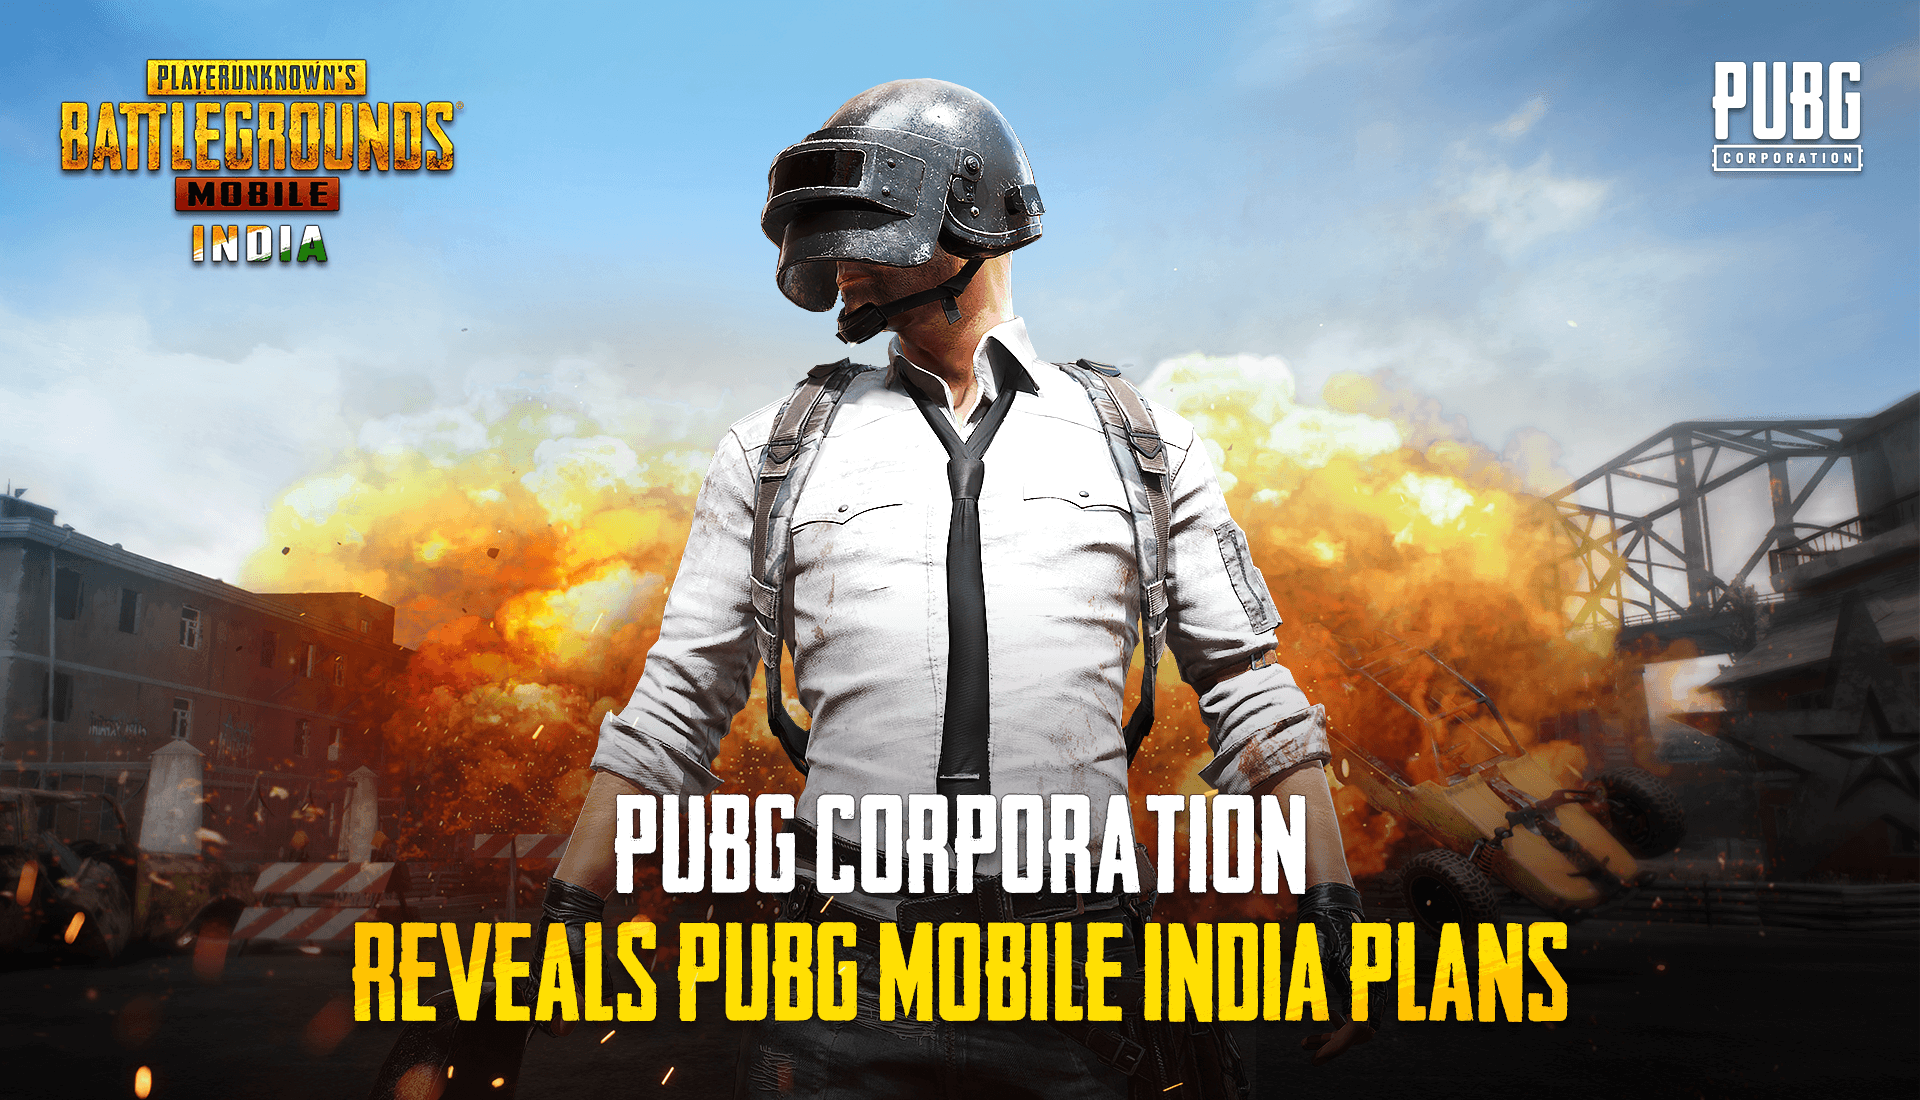 Pubg Mobile Pubg Mobile India To Be Launched Soon Parent Aims To Invest 100 Million Telecom News Et Telecom View allall photos tagged pubg. pubg mobile pubg mobile india to be